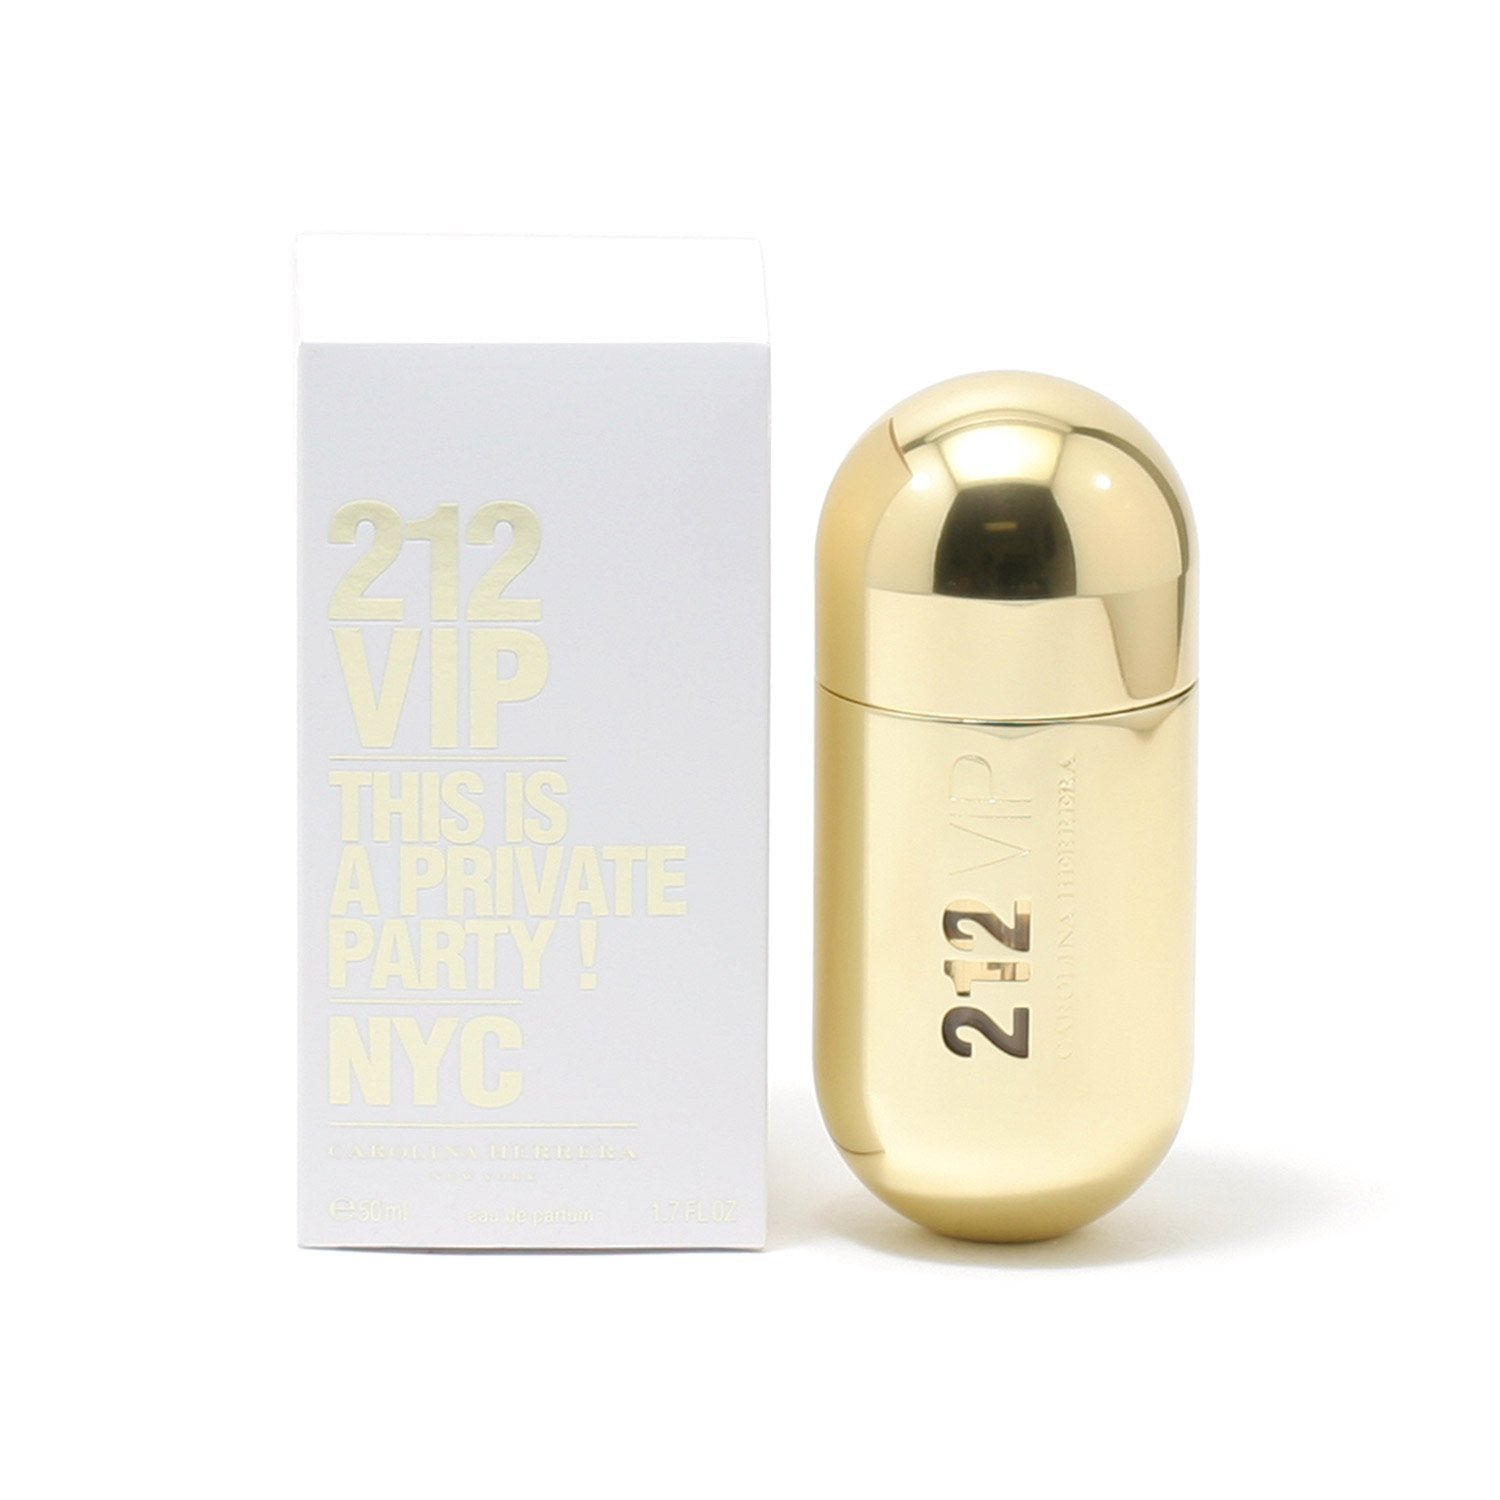 Perfume - 212 VIP FOR WOMEN BY CAROLINA HERRERA - EAU DE PARFUM SPRAY